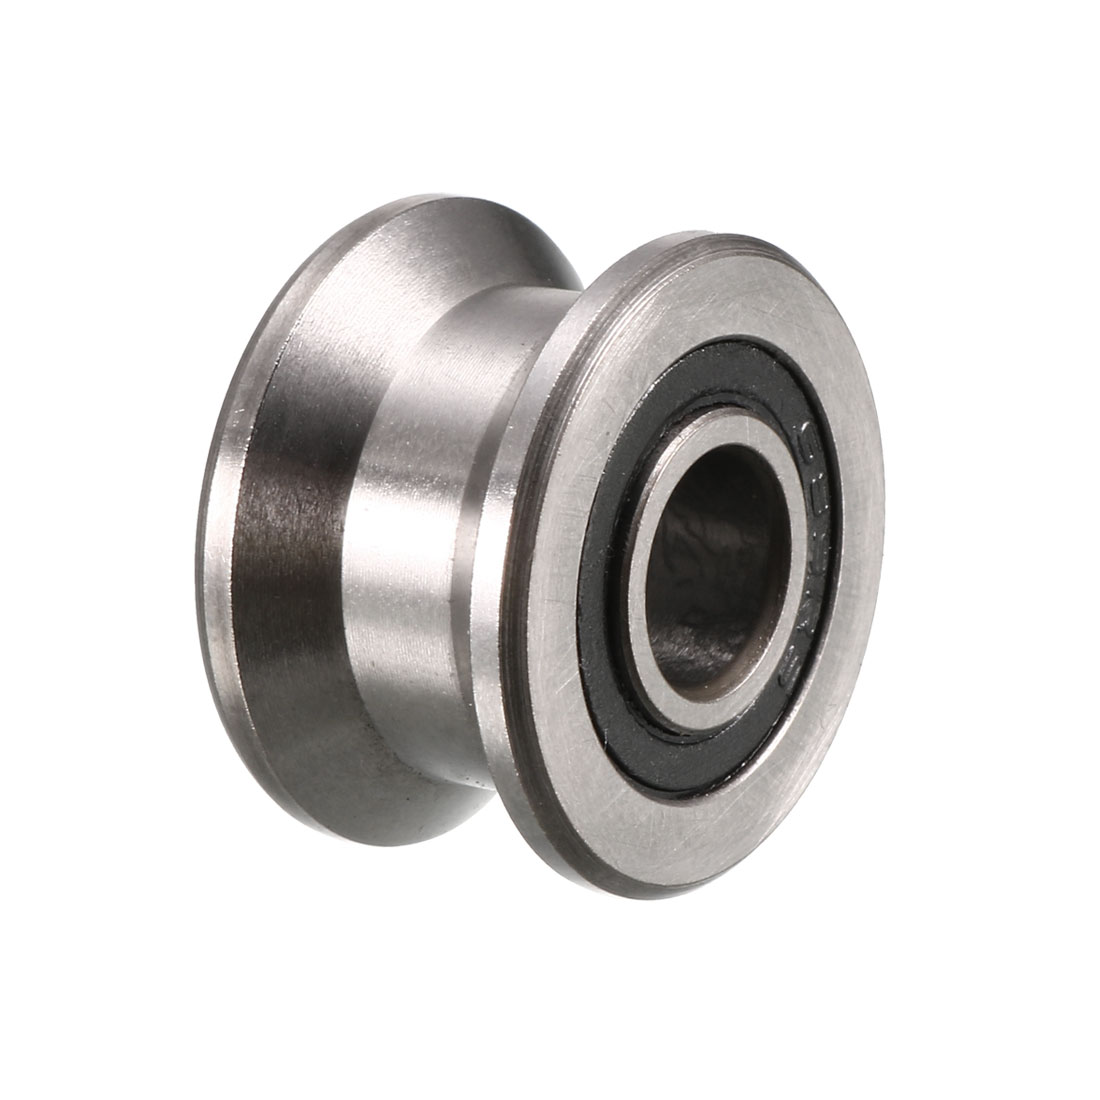 T22 V-Groove Ball Bearing 8x22.5x13.5mm Guide Pulley Bearings for 12mm Shaft